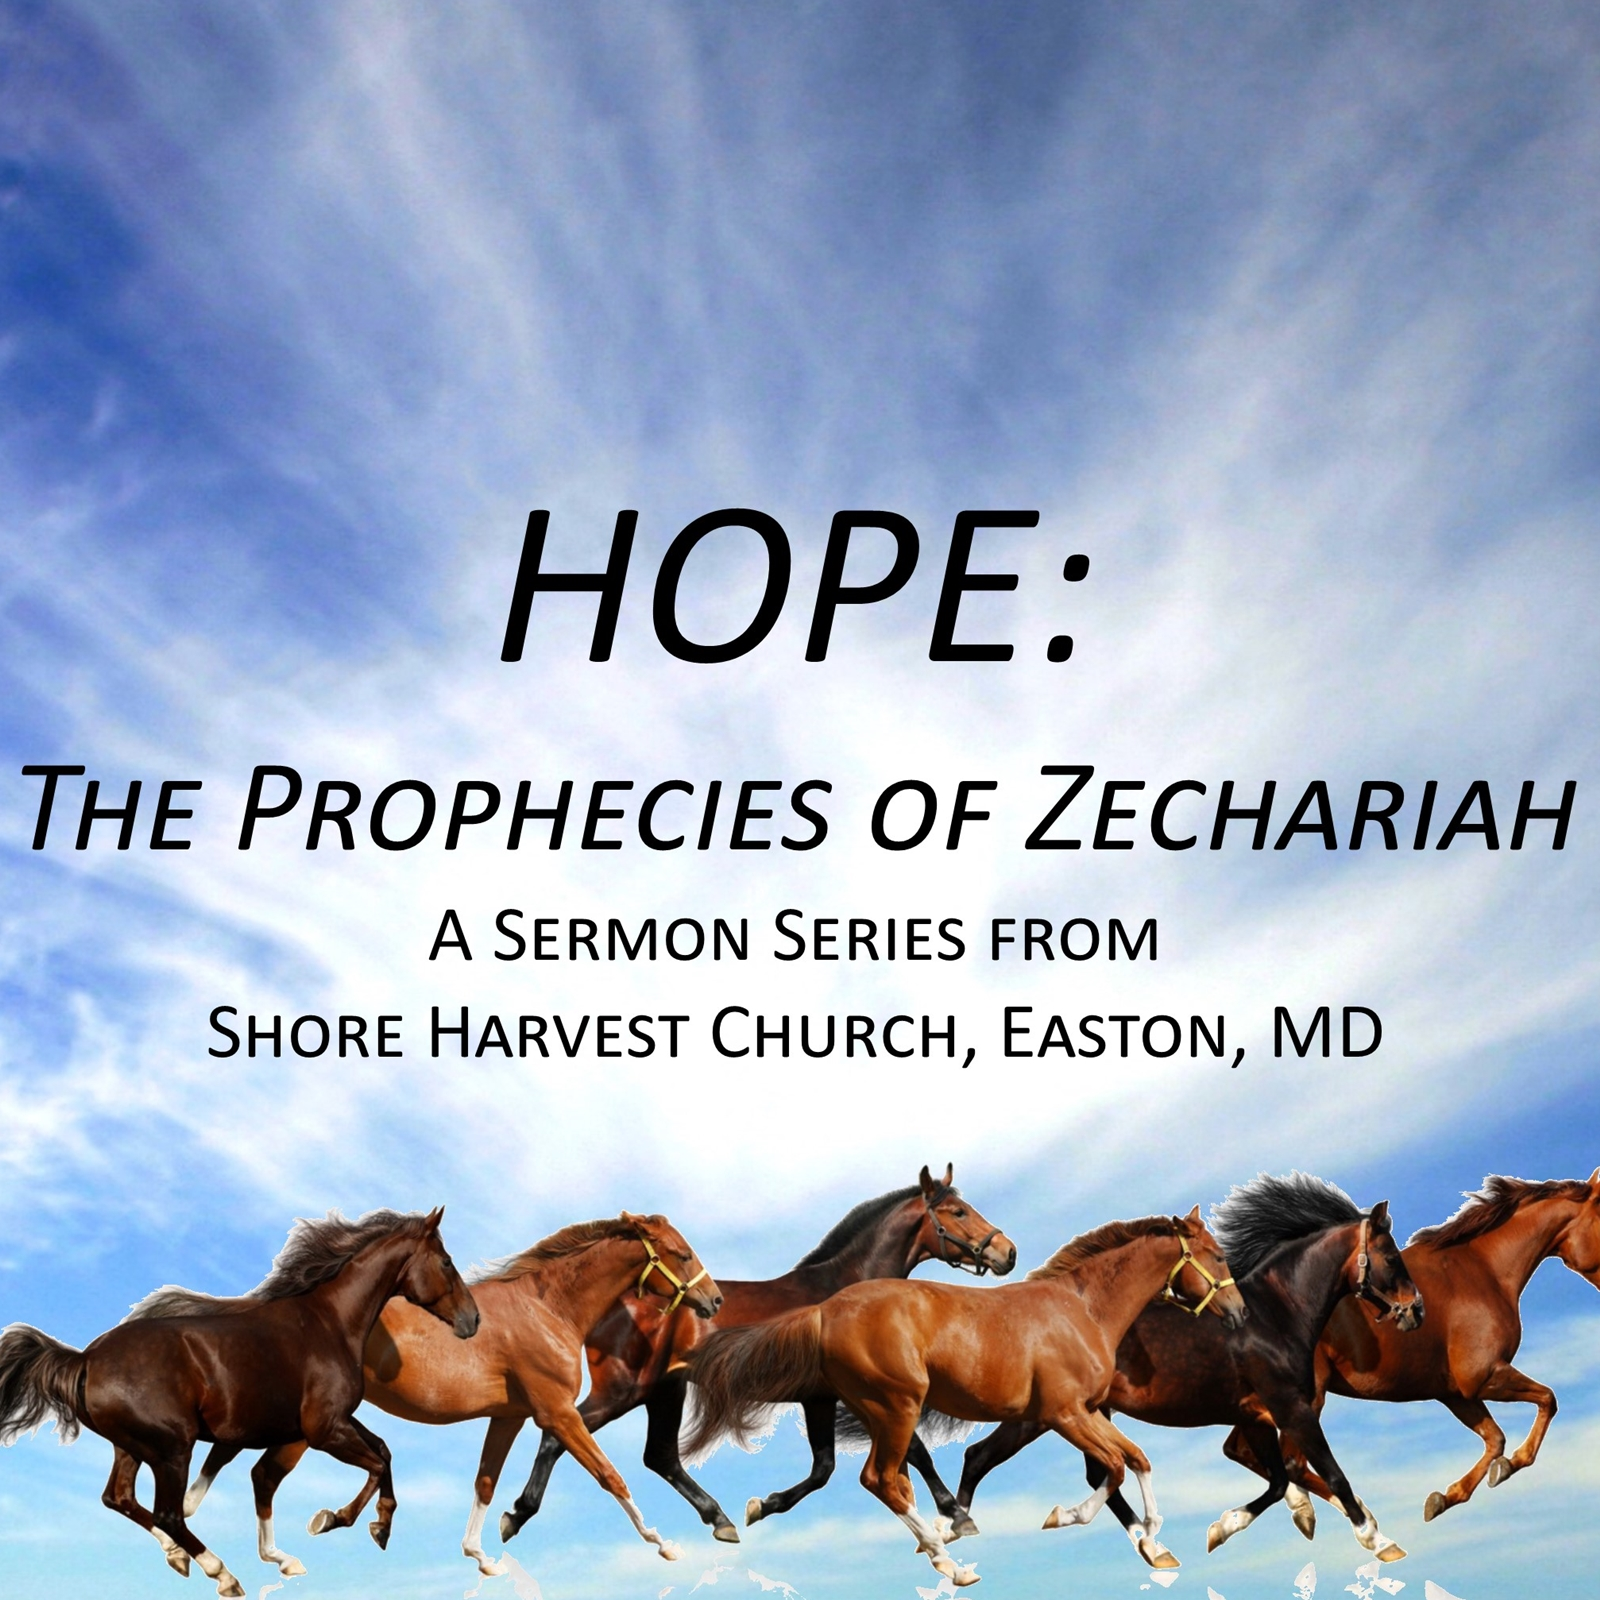 HOPE - The Prophecies of Zechariah, Podcast Cover Image.jpg